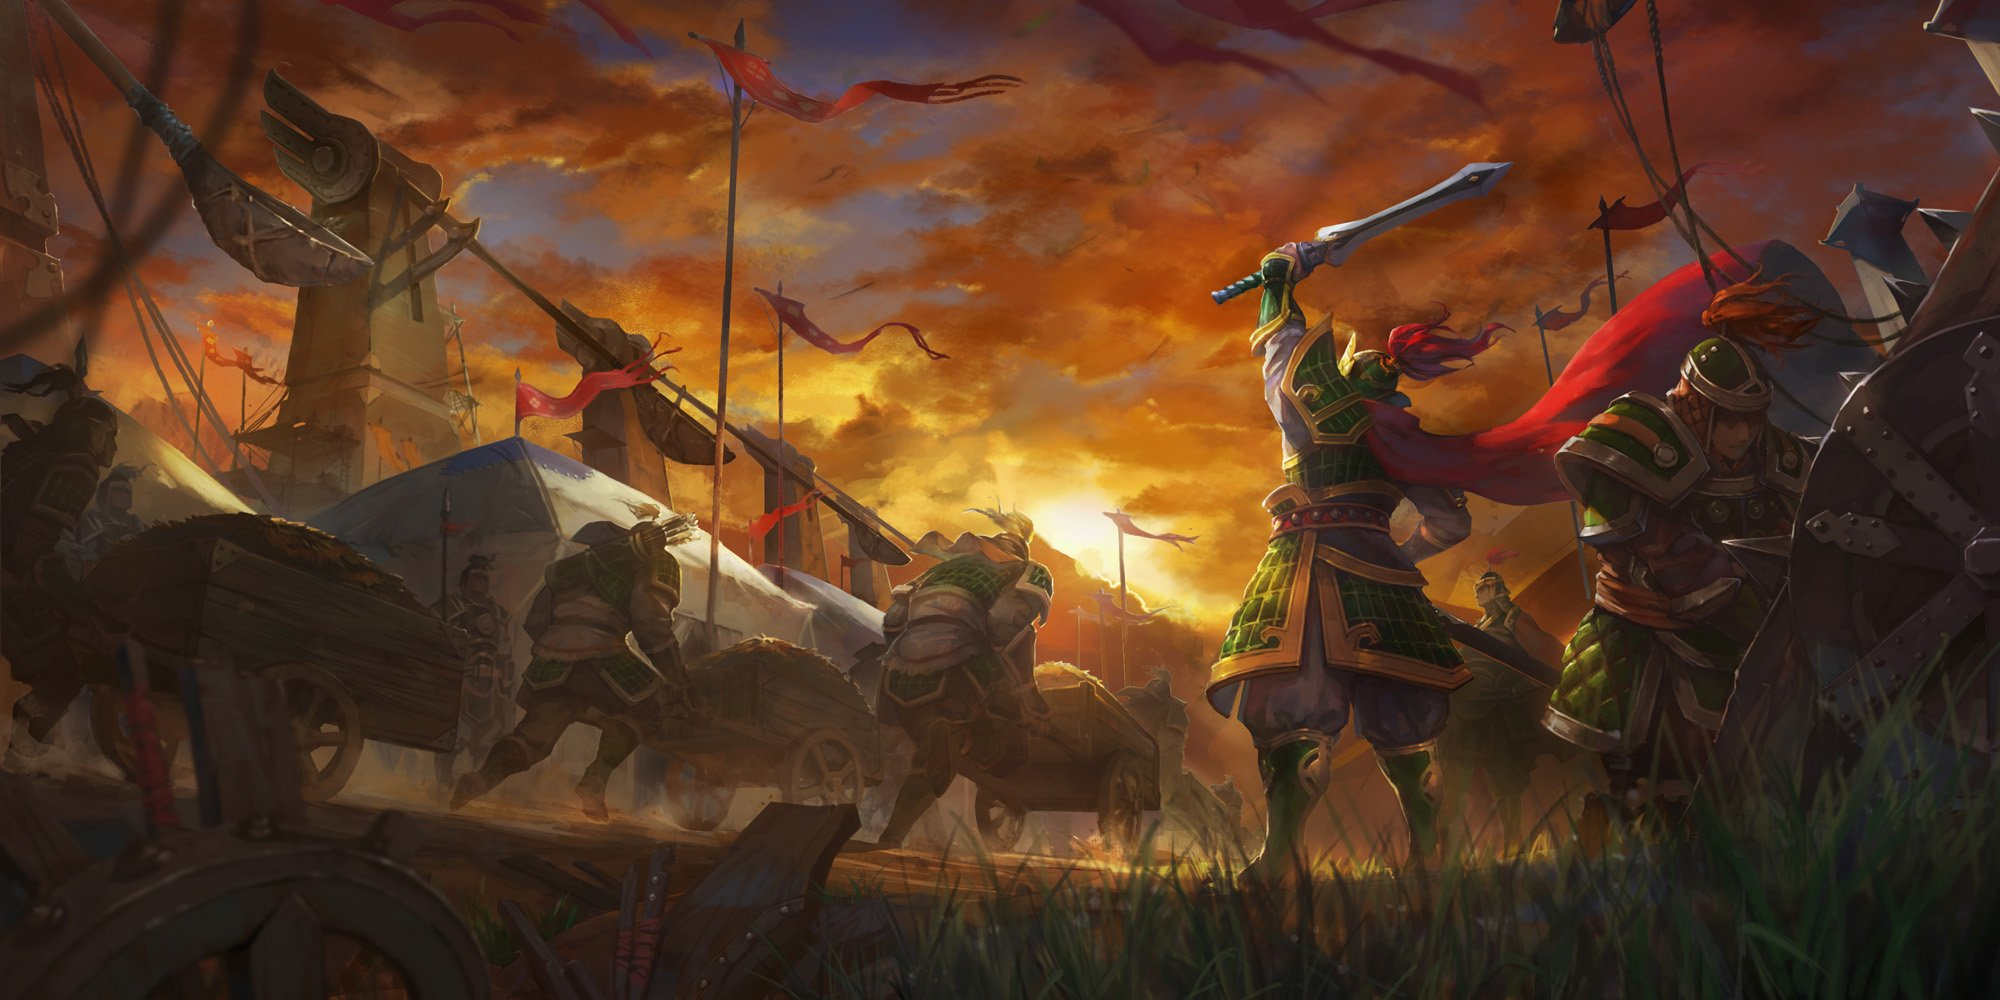 Download Chinese Warrior Wallpaper Gallery